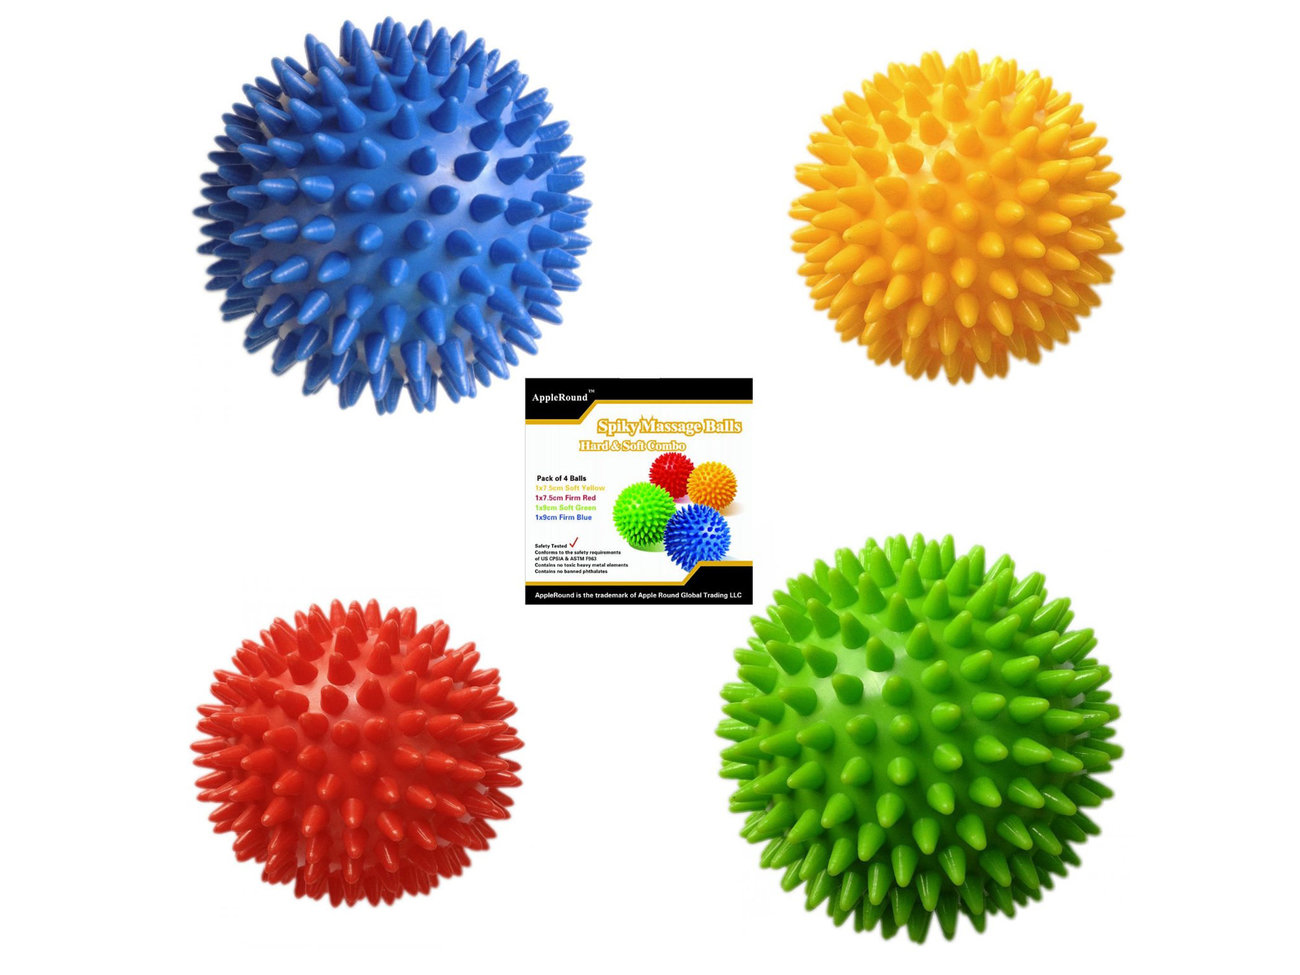 Spiky-Massage-Balls-TRVLFIT0816.jpg